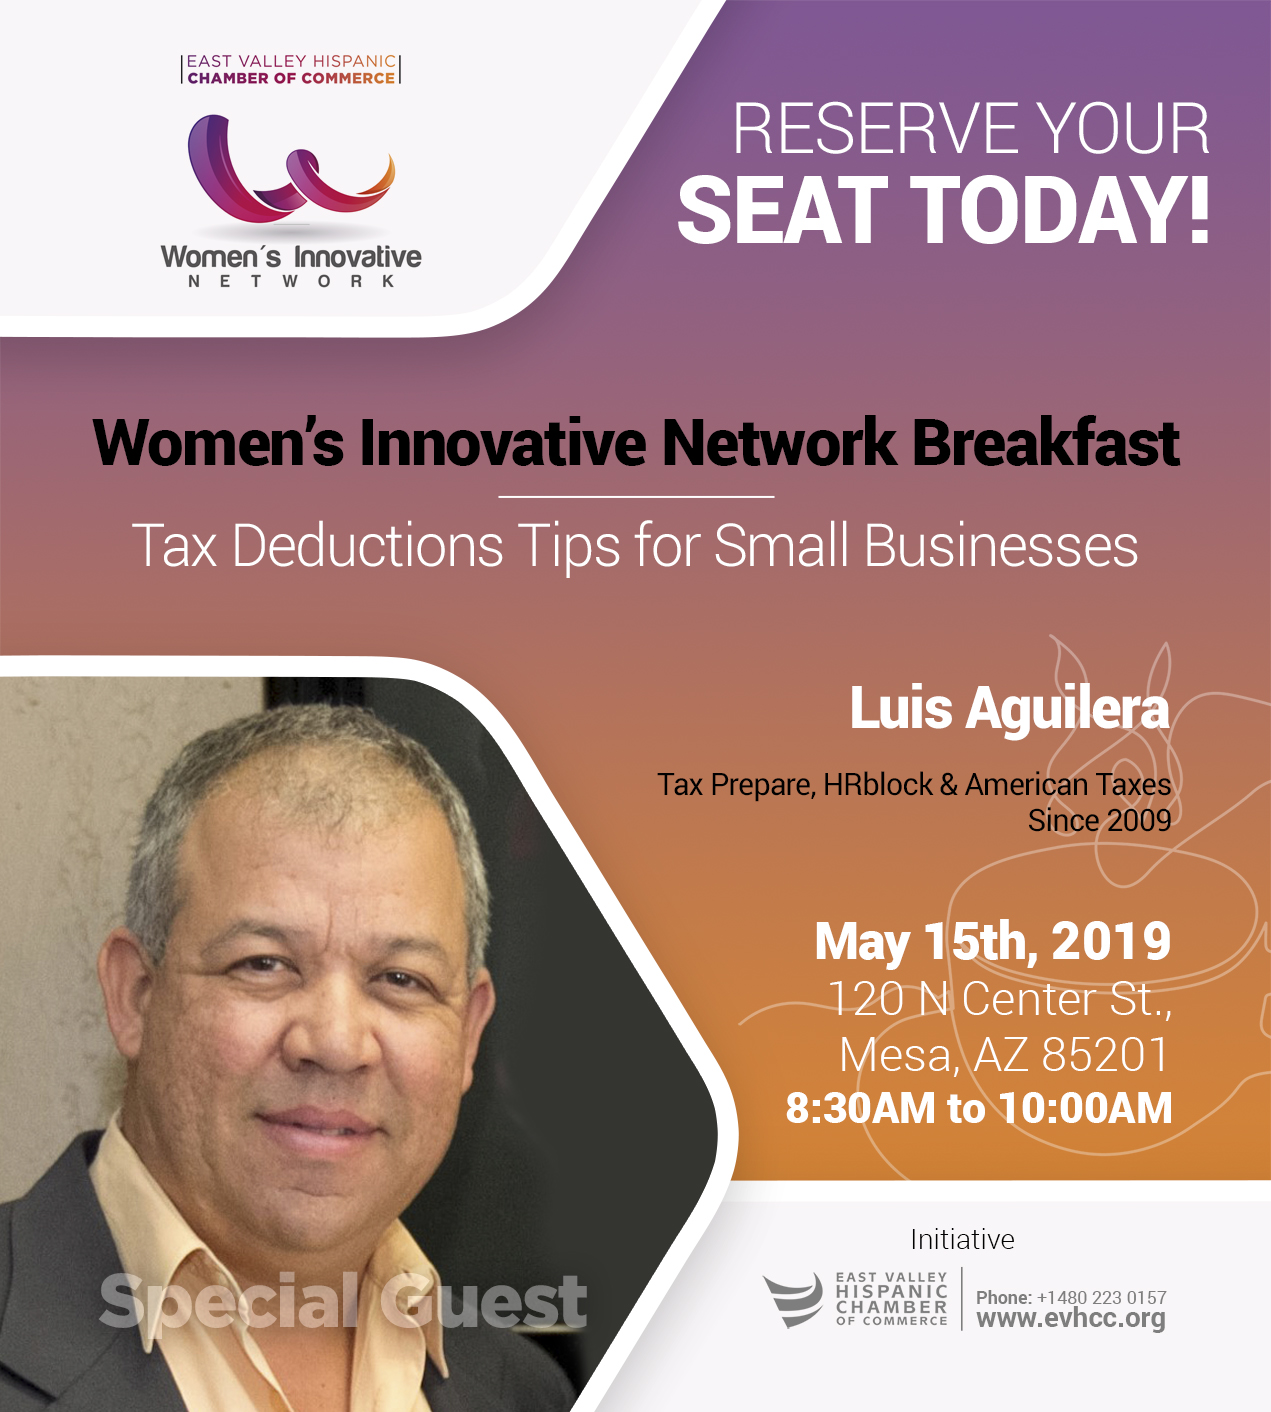 East Valley Hispanic Chamber of Commerce - Women´s Innovative Network Breakfast 05-15-2019